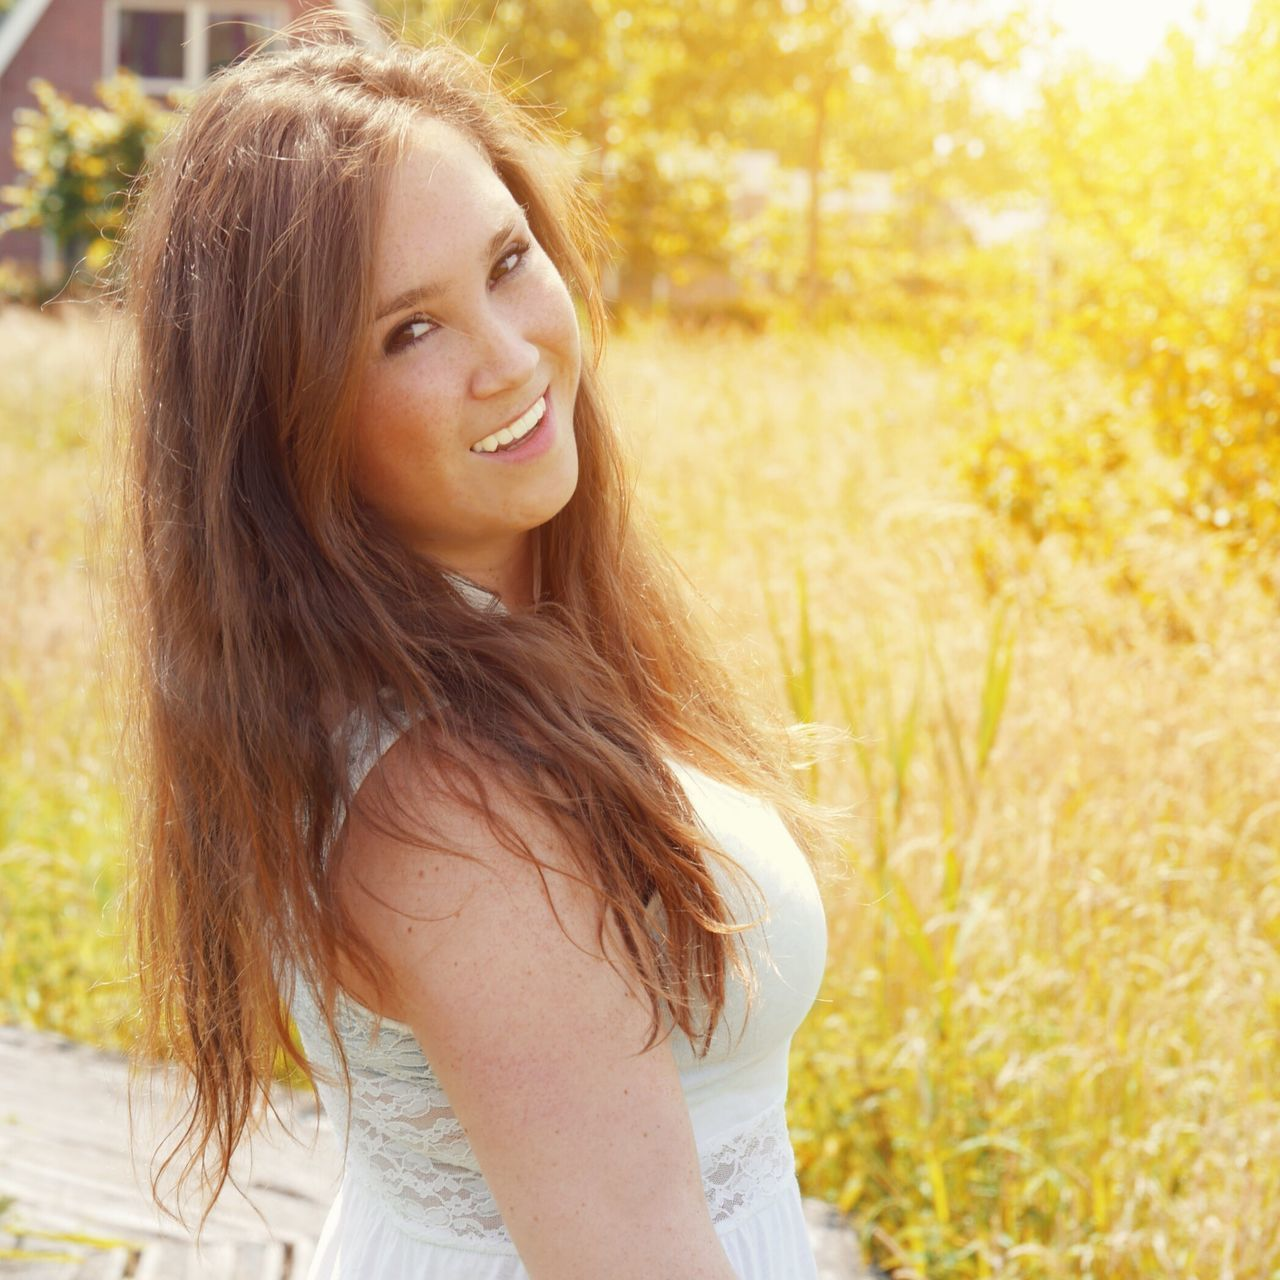 long hair, one person, smiling, young adult, real people, outdoors, beautiful woman, portrait, looking at camera, happiness, young women, nature, field, sunlight, standing, day, grass